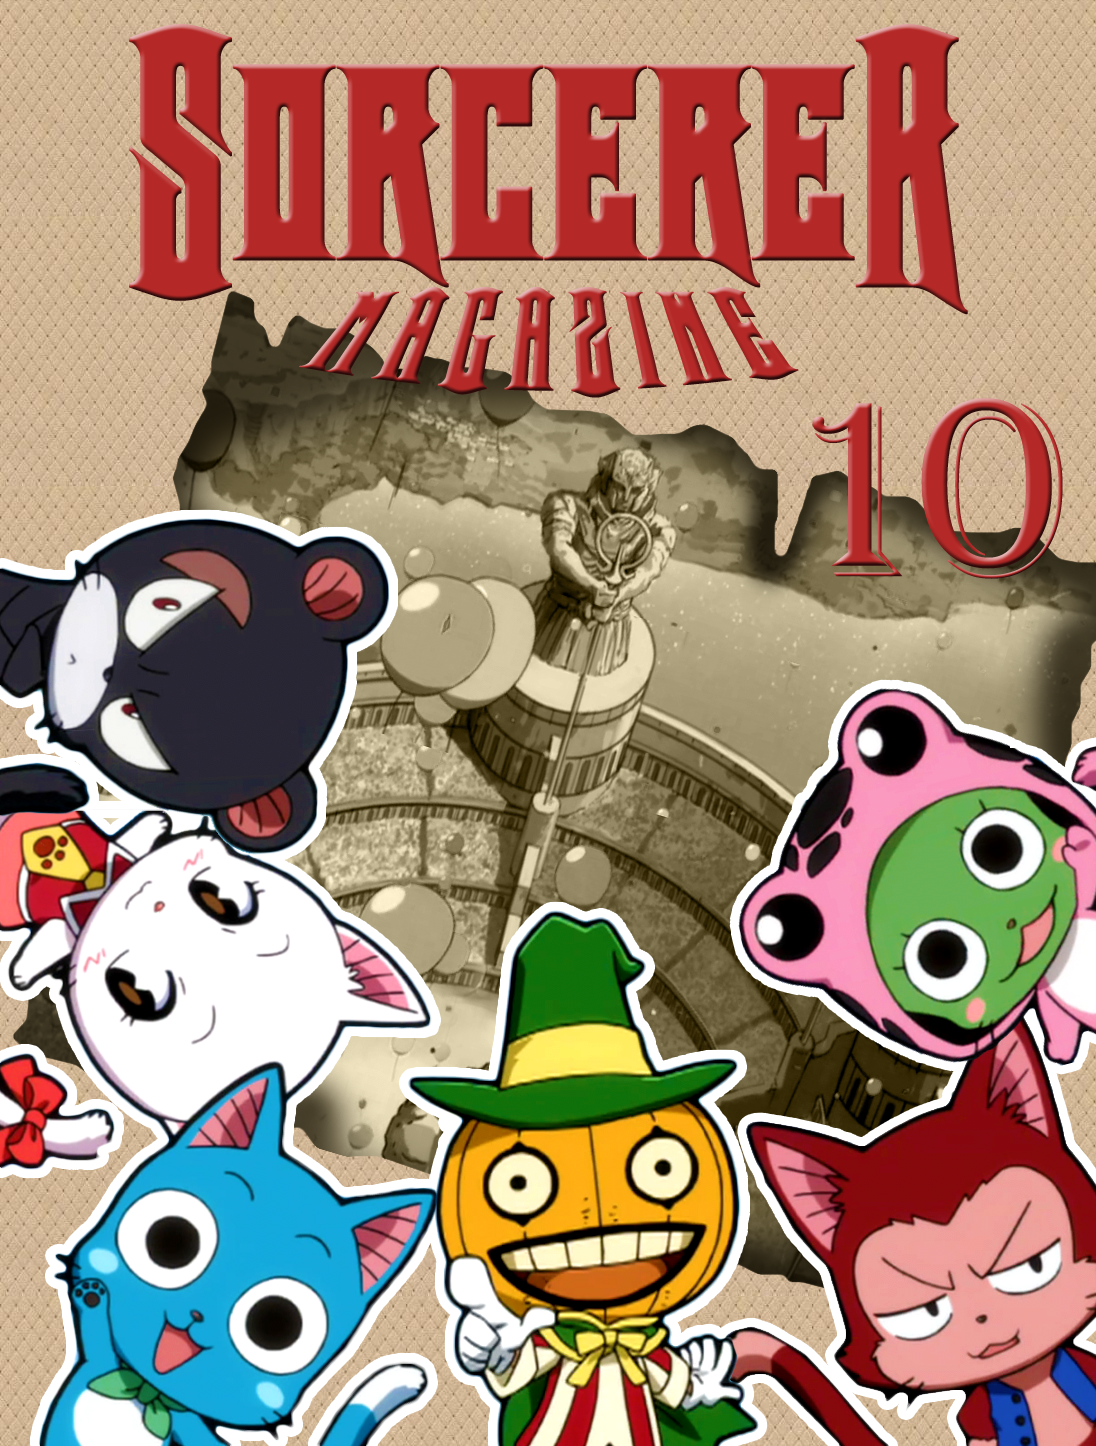 IamJakuhoRaikoben/Sorcerer Magazine, Issue 10: October 2012